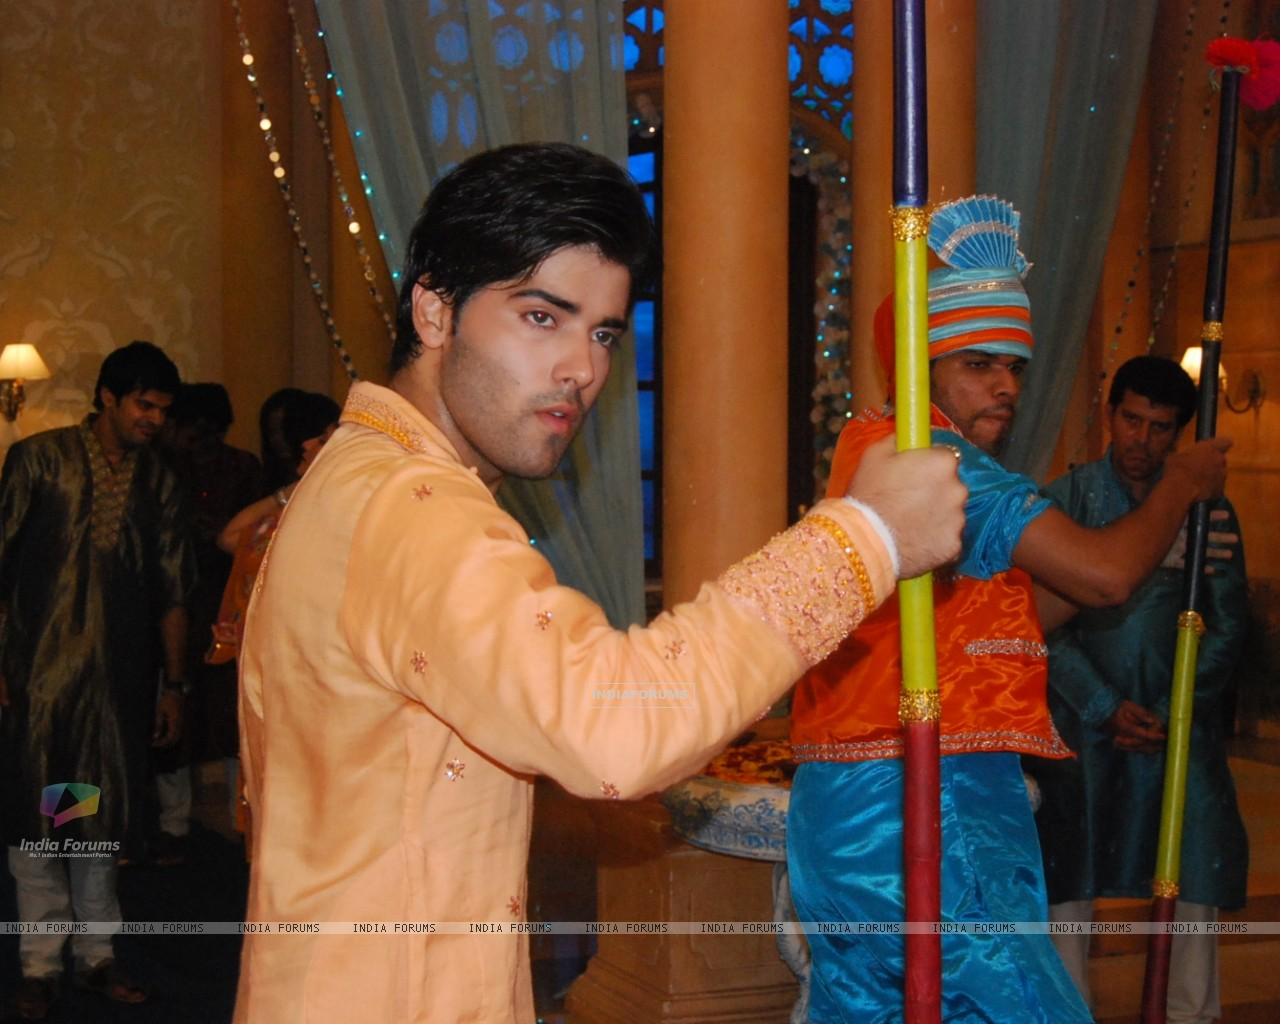 Kinshuk as Viren doing bhangra in Chand Chupa Badal Mein (105400) size:1280x1024